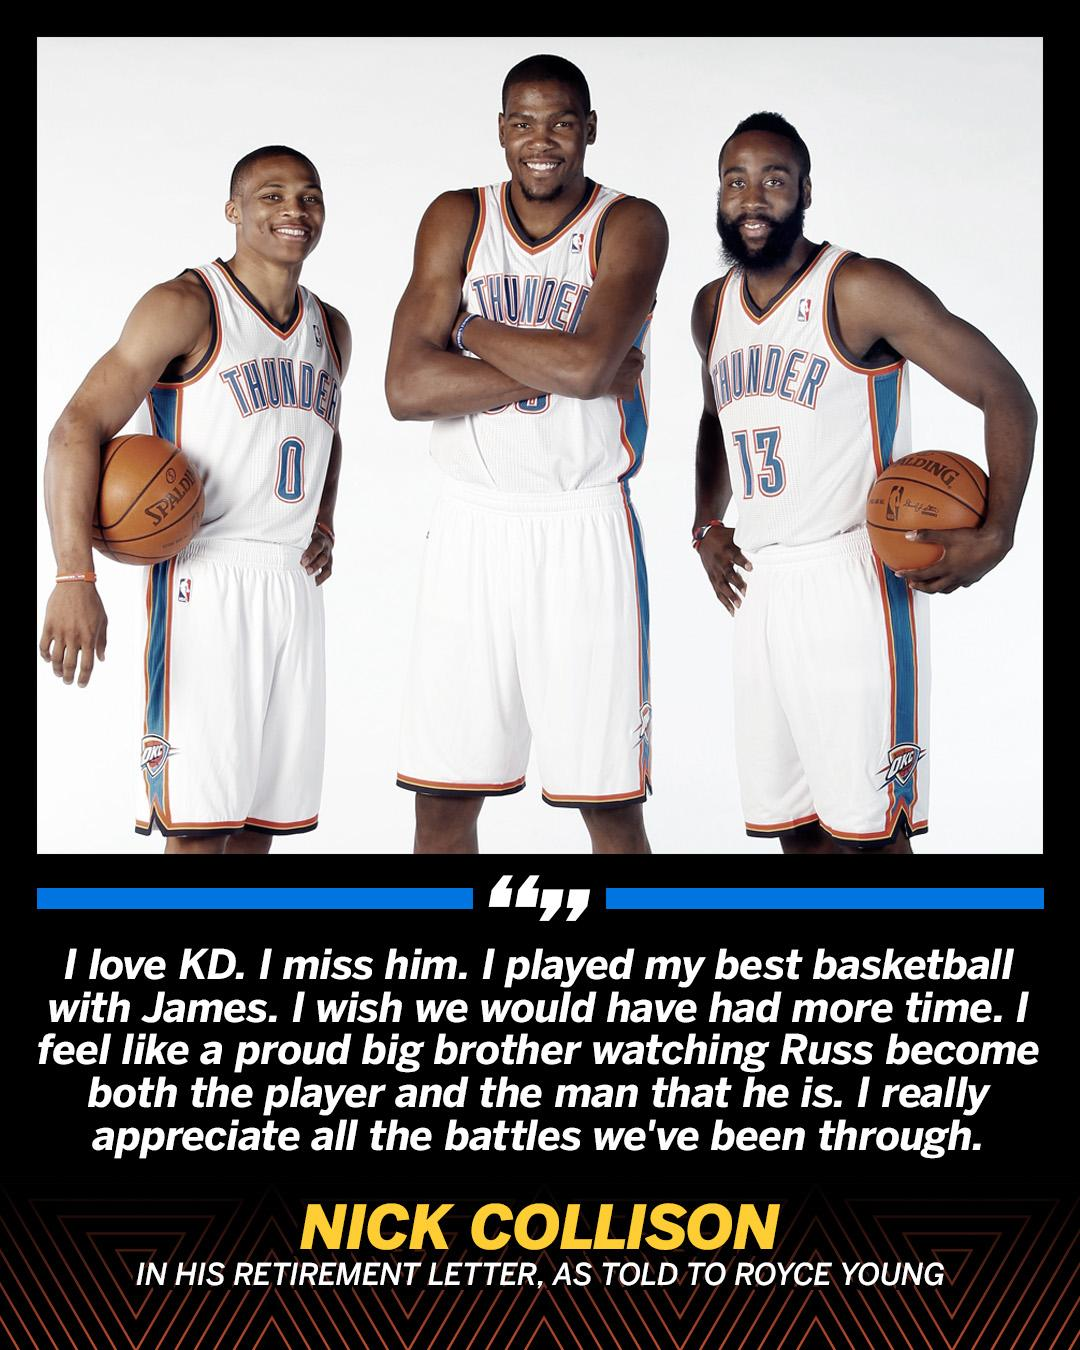 .@nickcollison4 reflects on playing with KD, Russ and Harden in his retirement letter. https://t.co/cHVgBpg1P4